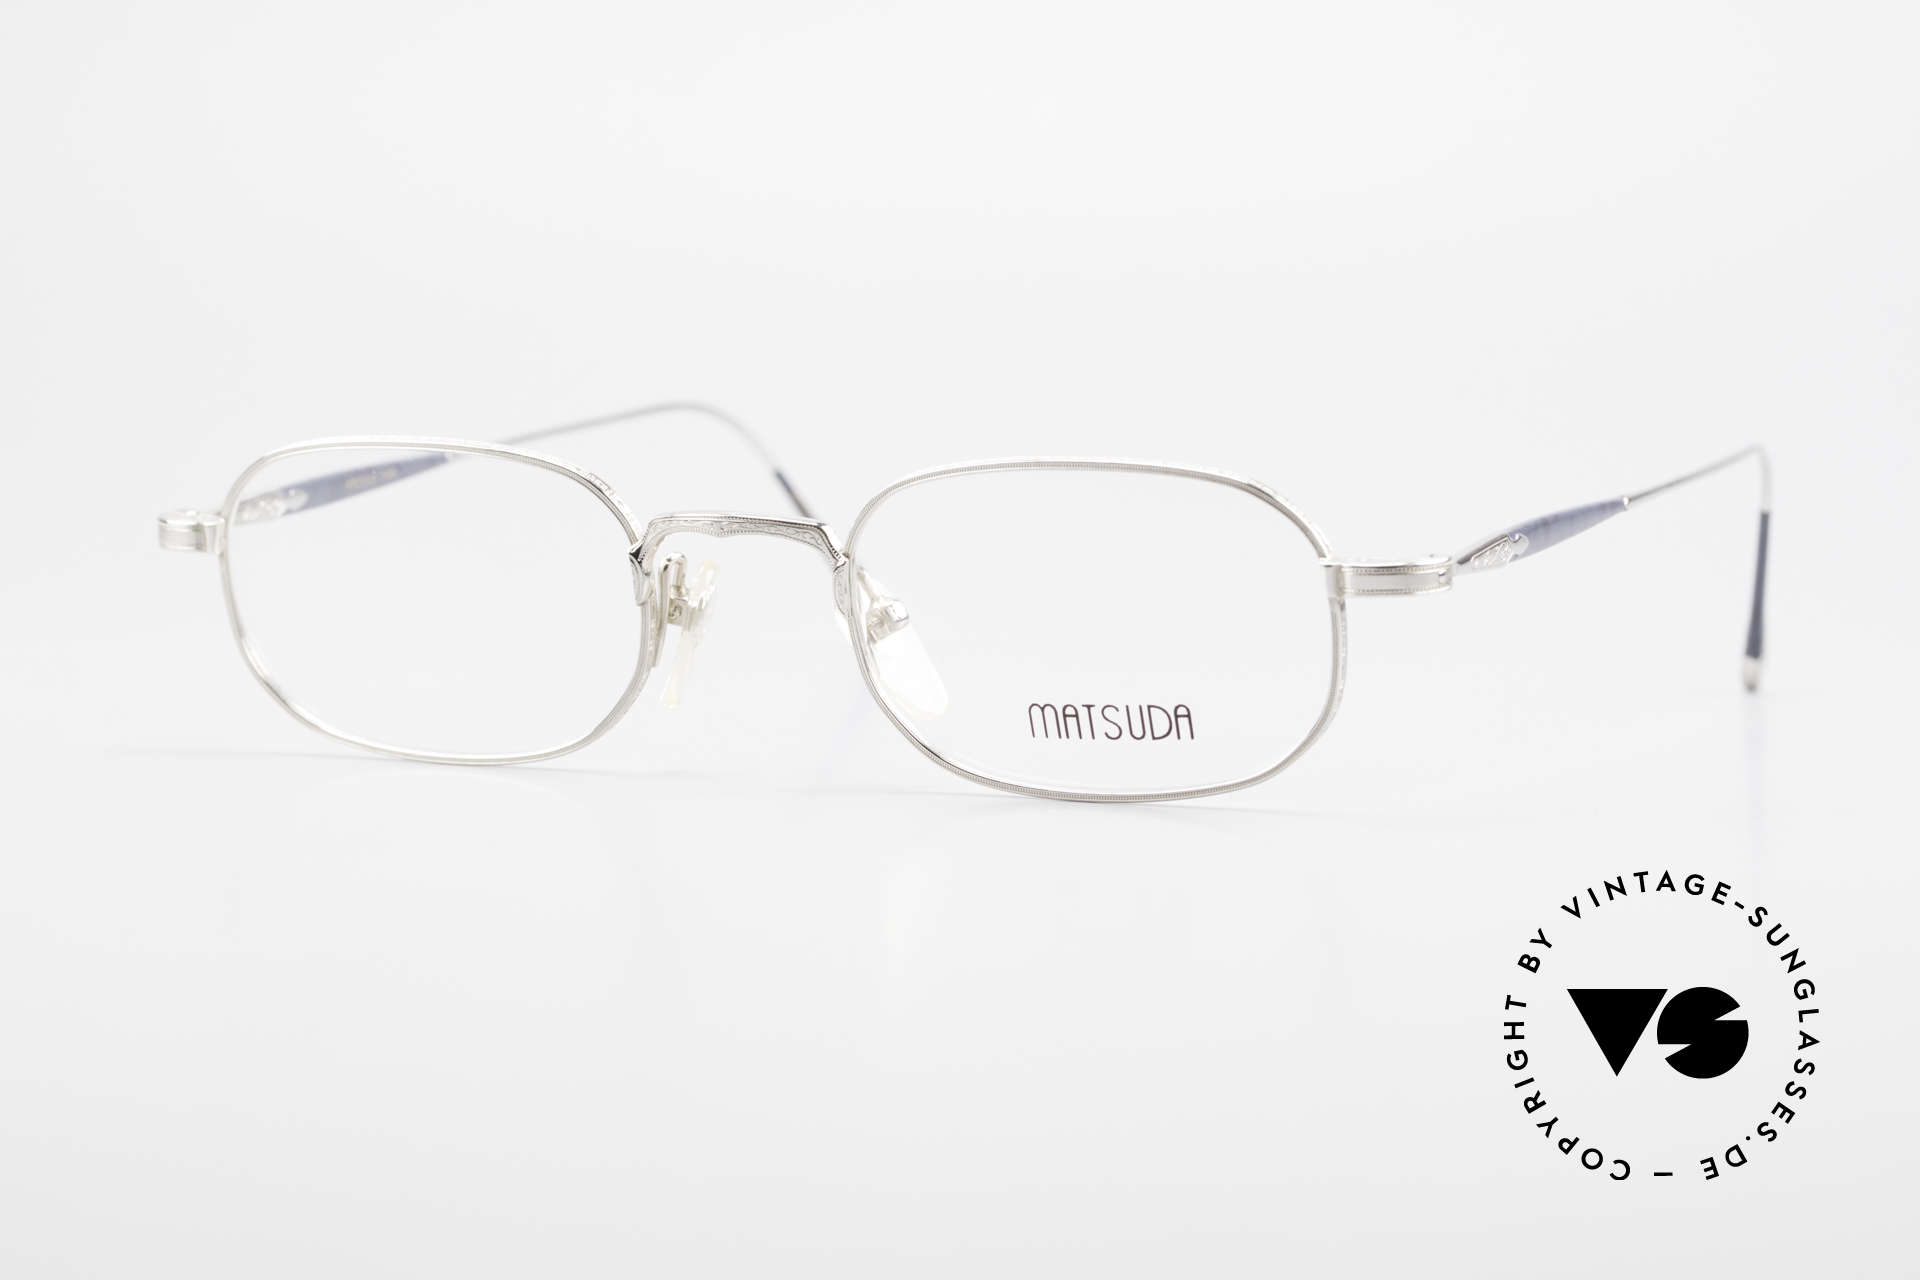 Matsuda 10108 90's Men's Eyeglasses High End, vintage Matsuda designer eyeglasses from the mid 90's, Made for Men